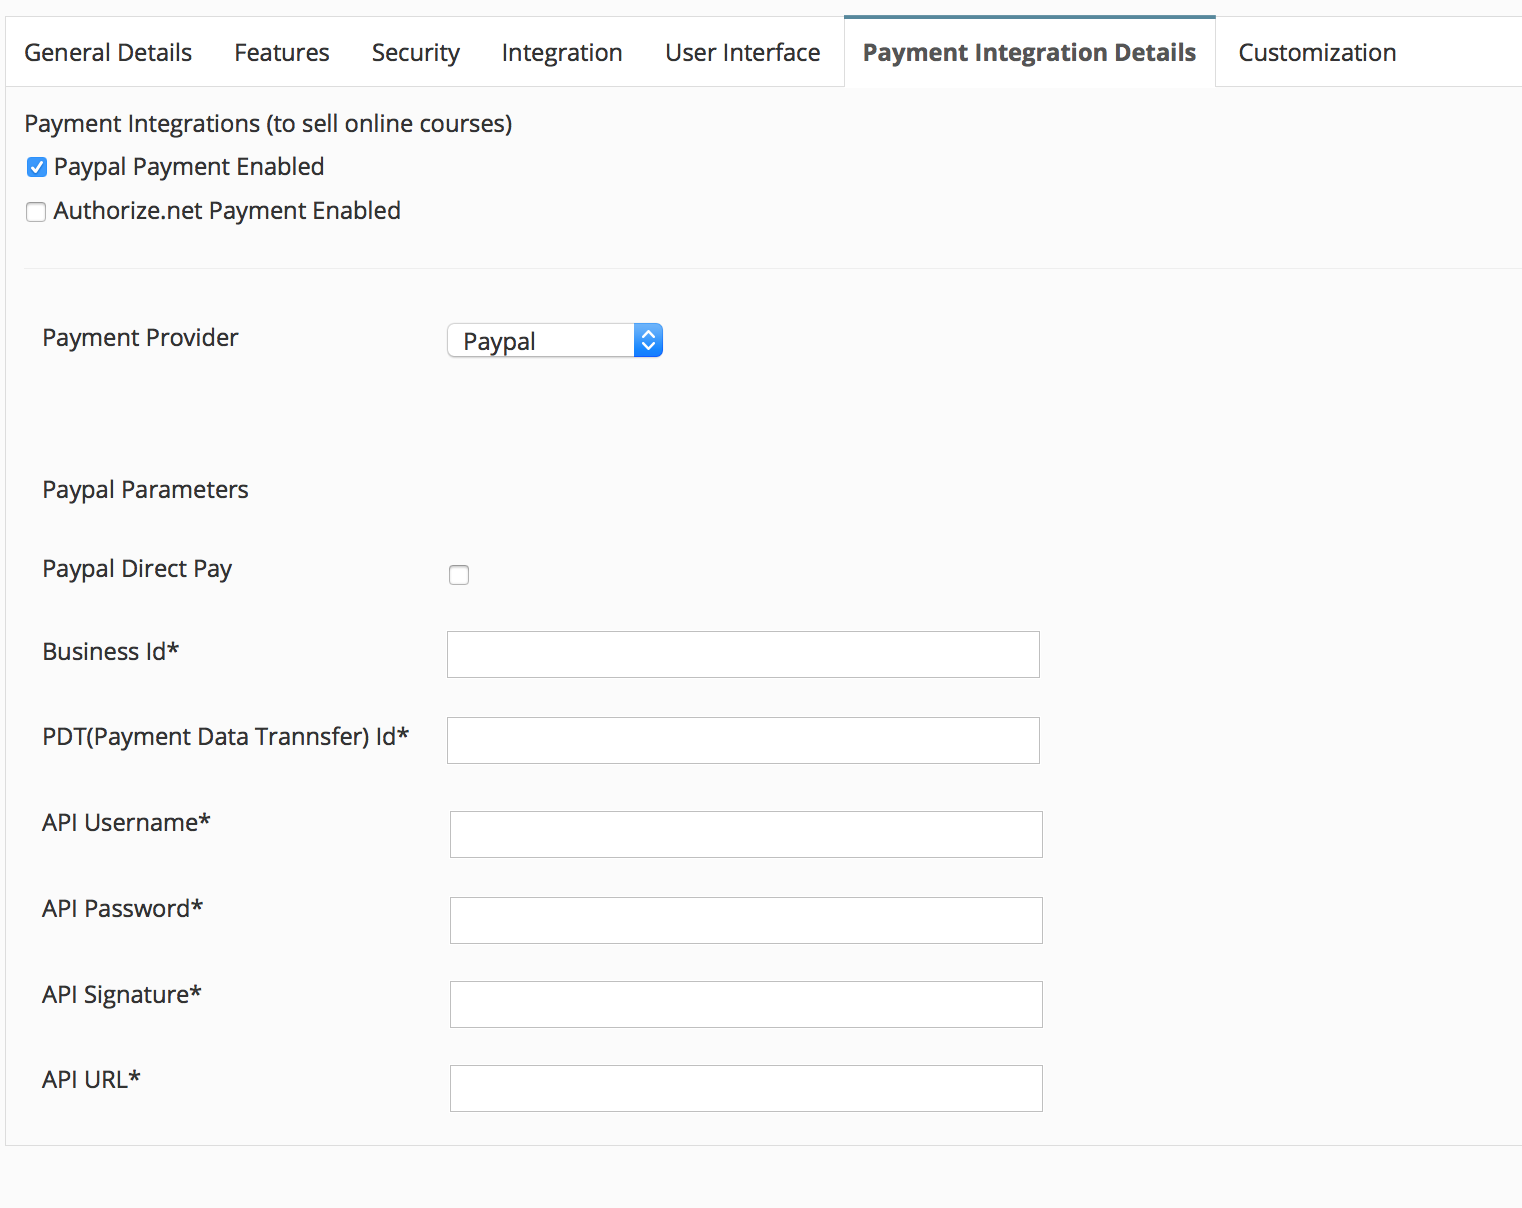 Link Paypal Account to Microsite